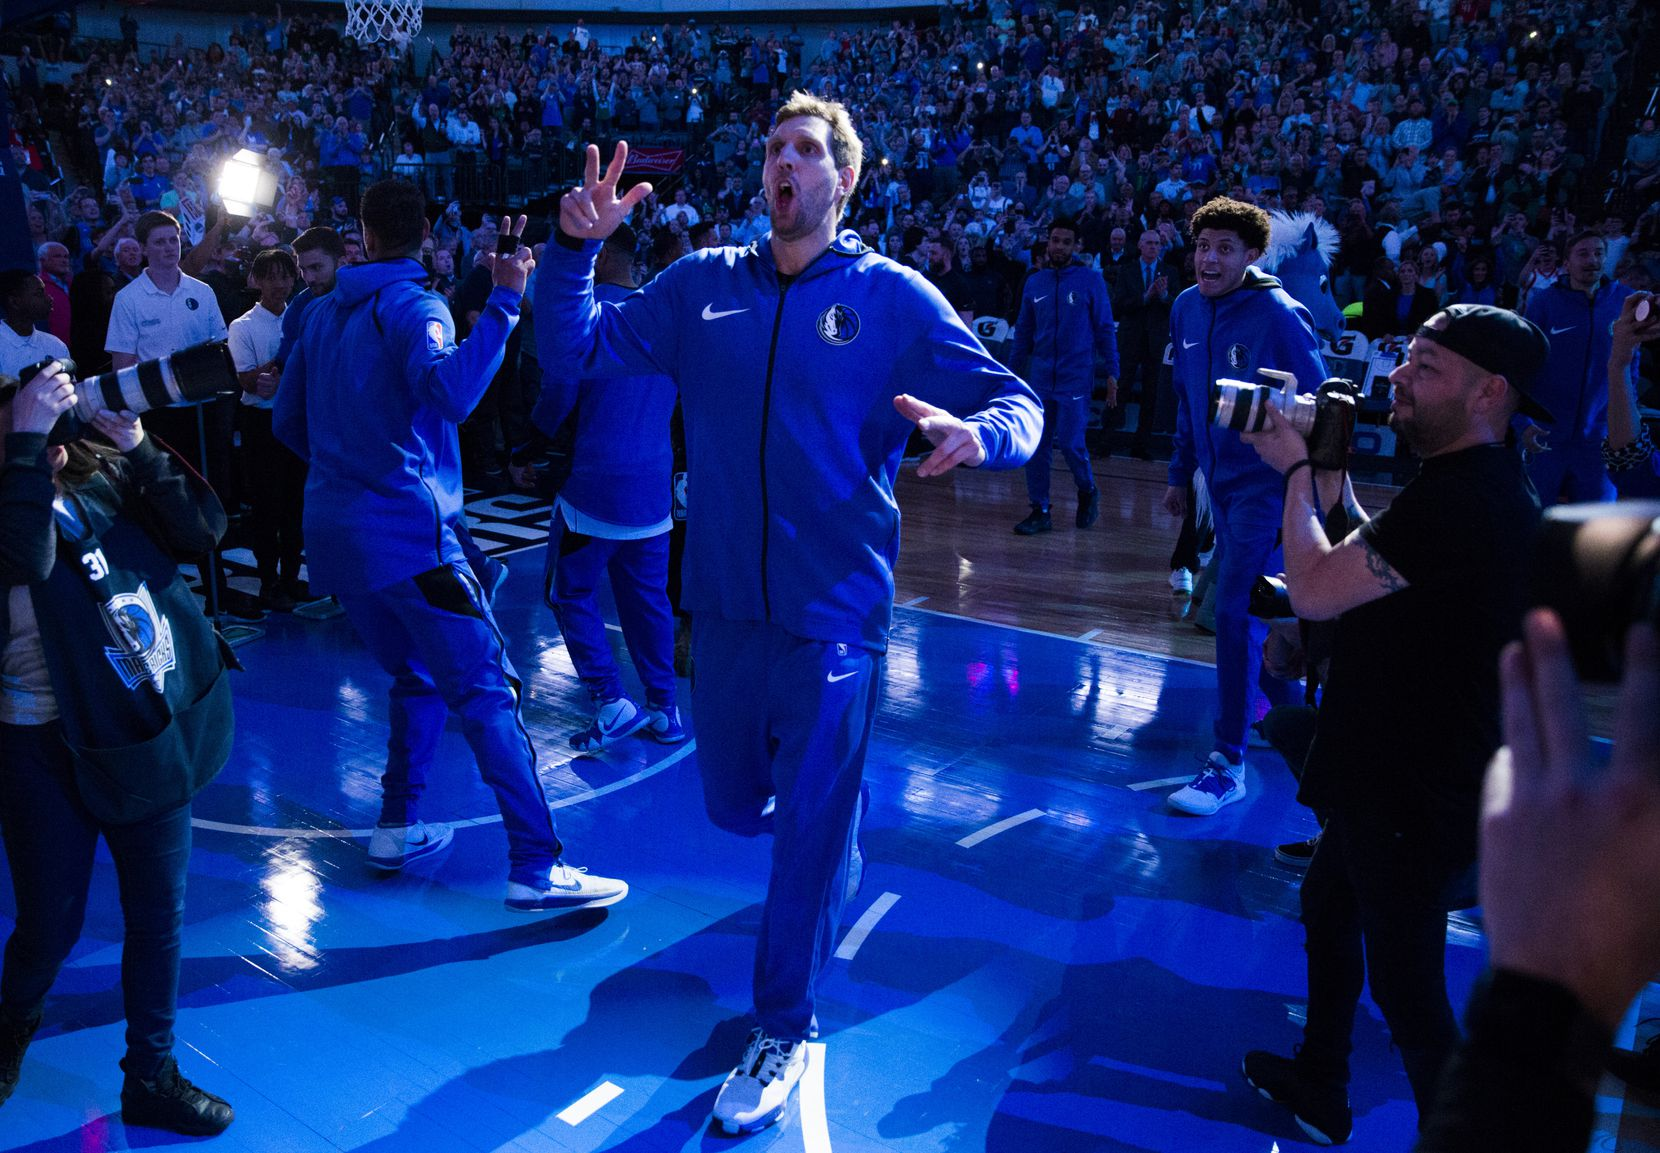 Dallas Mavericks forward Dirk Nowitzki (41) enters the court before an NBA game between the Dallas Mavericks and the New Orleans Pelicans on Monday, March 18, 2019 at American Airlines Center in Dallas.